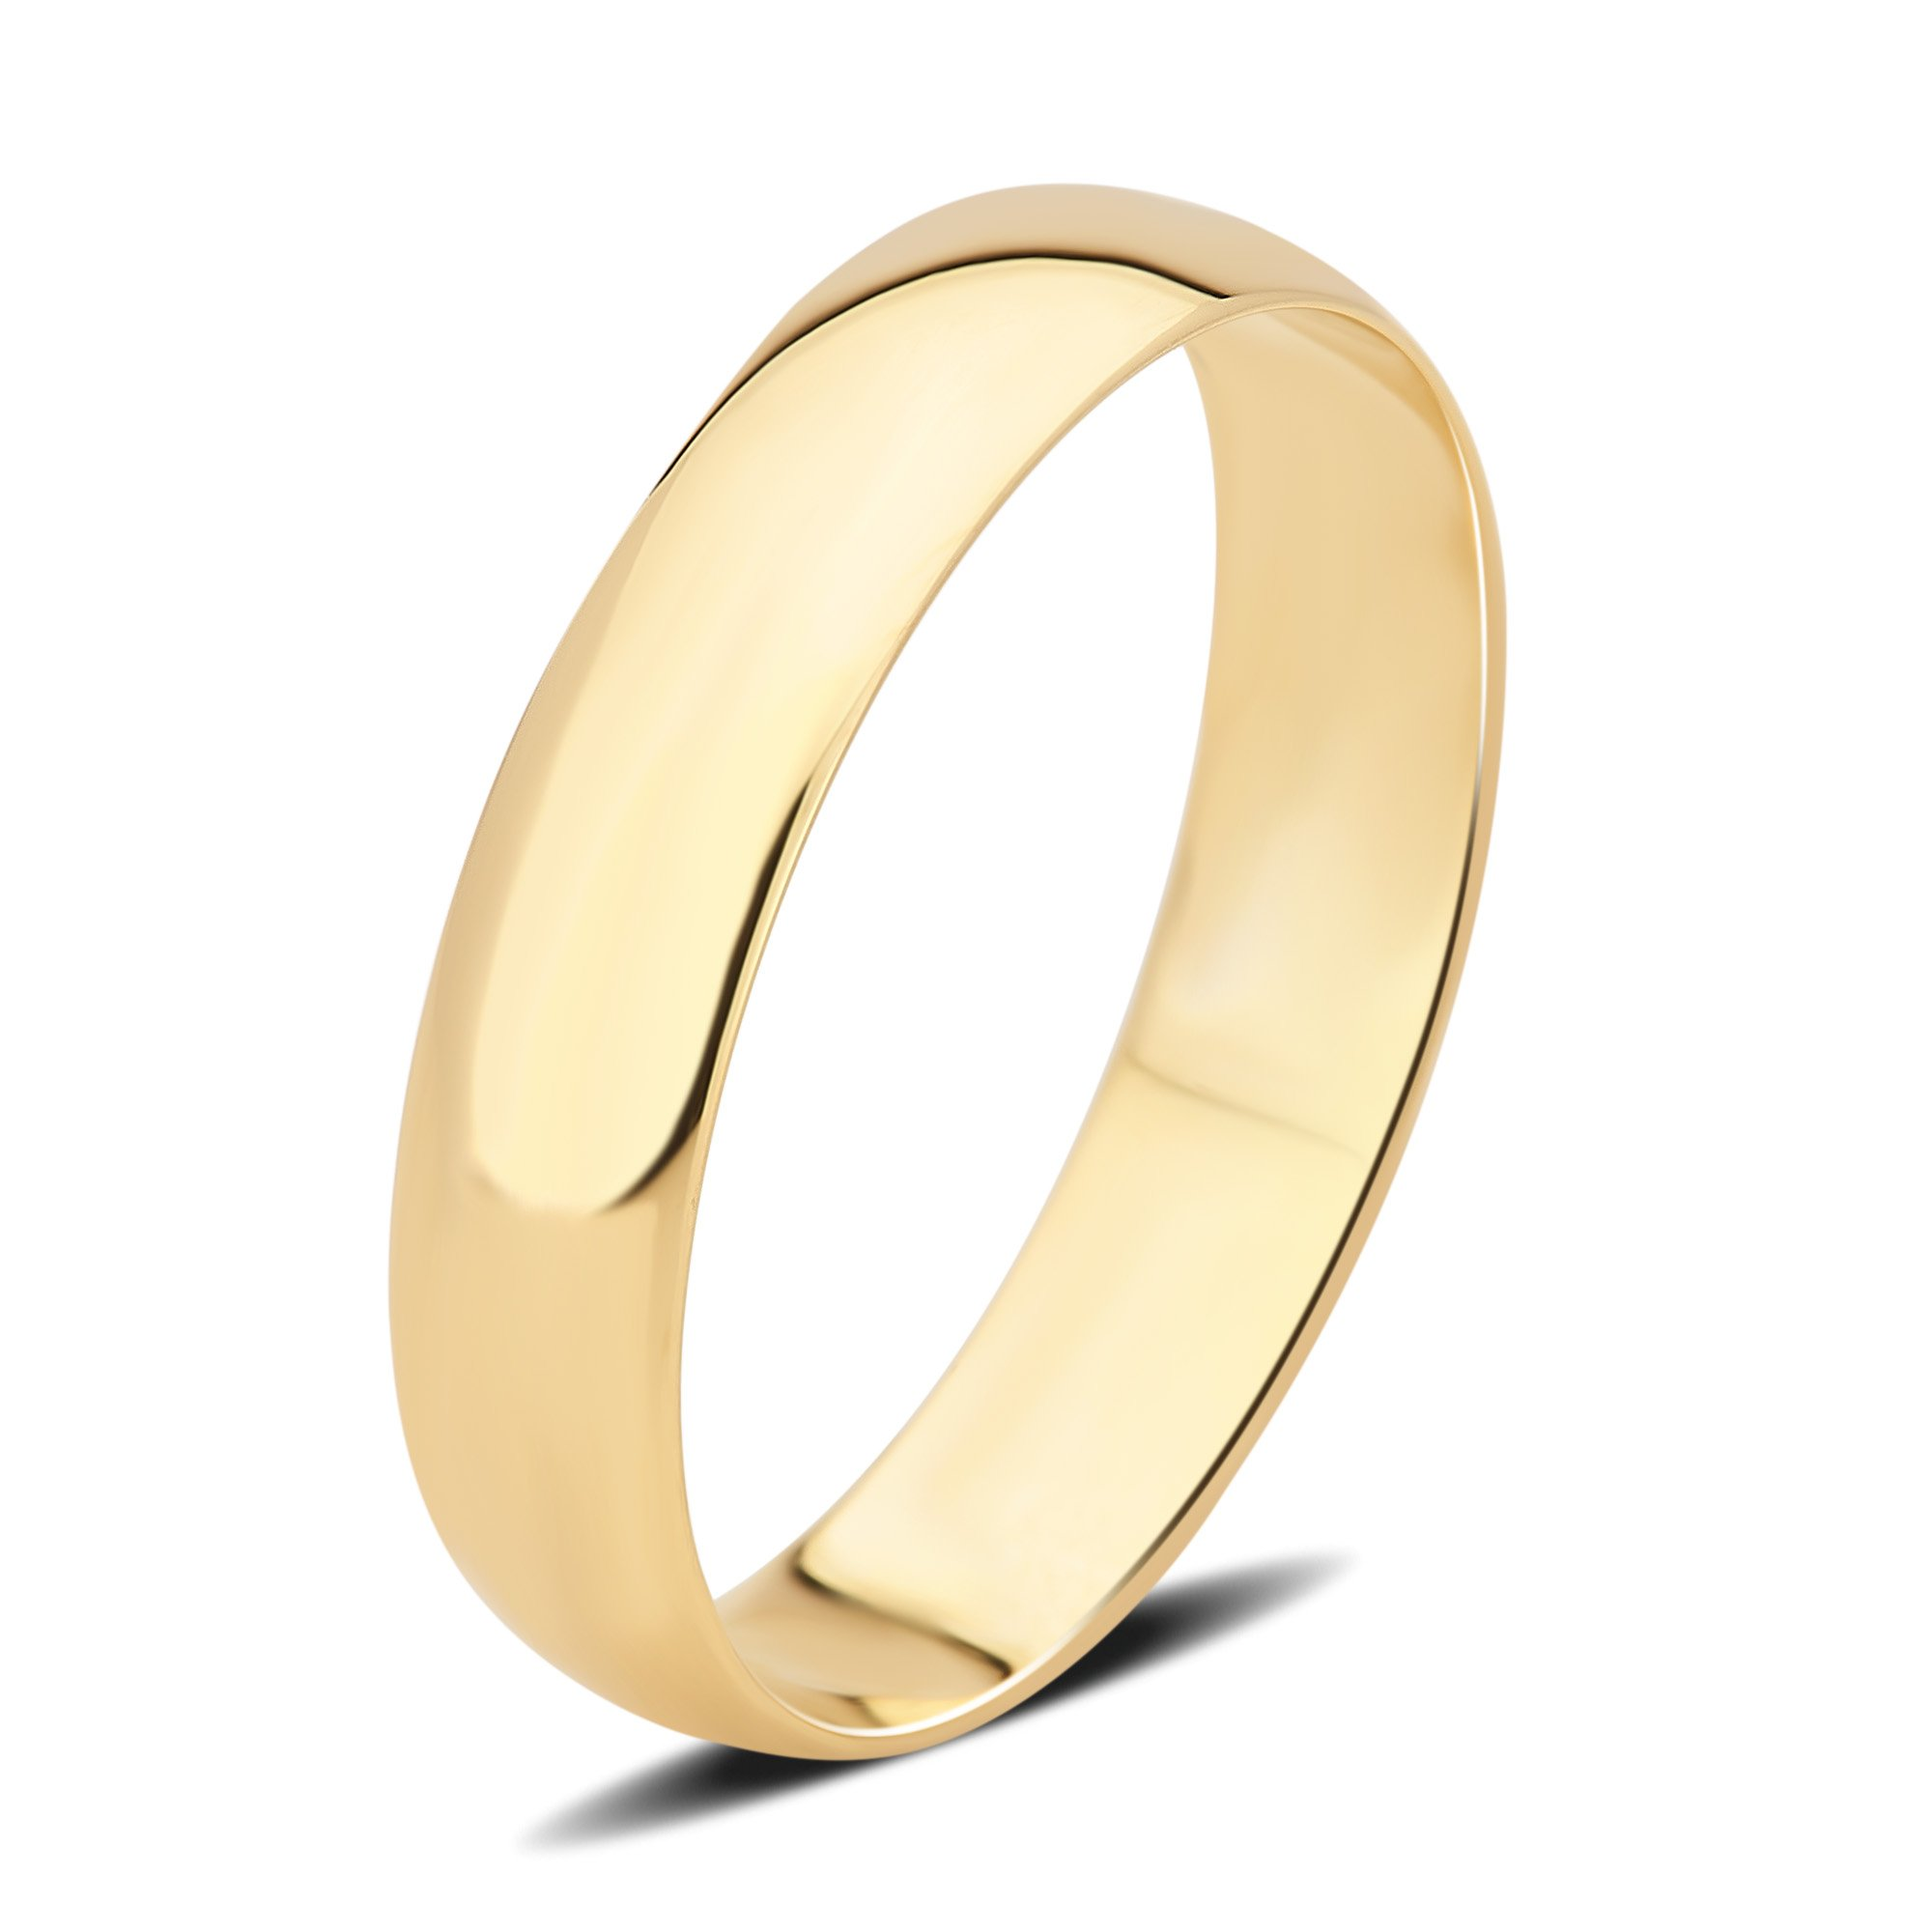 DiamondMuse 4 mm Plain Wedding Band in 10K Yellow Gold (9)